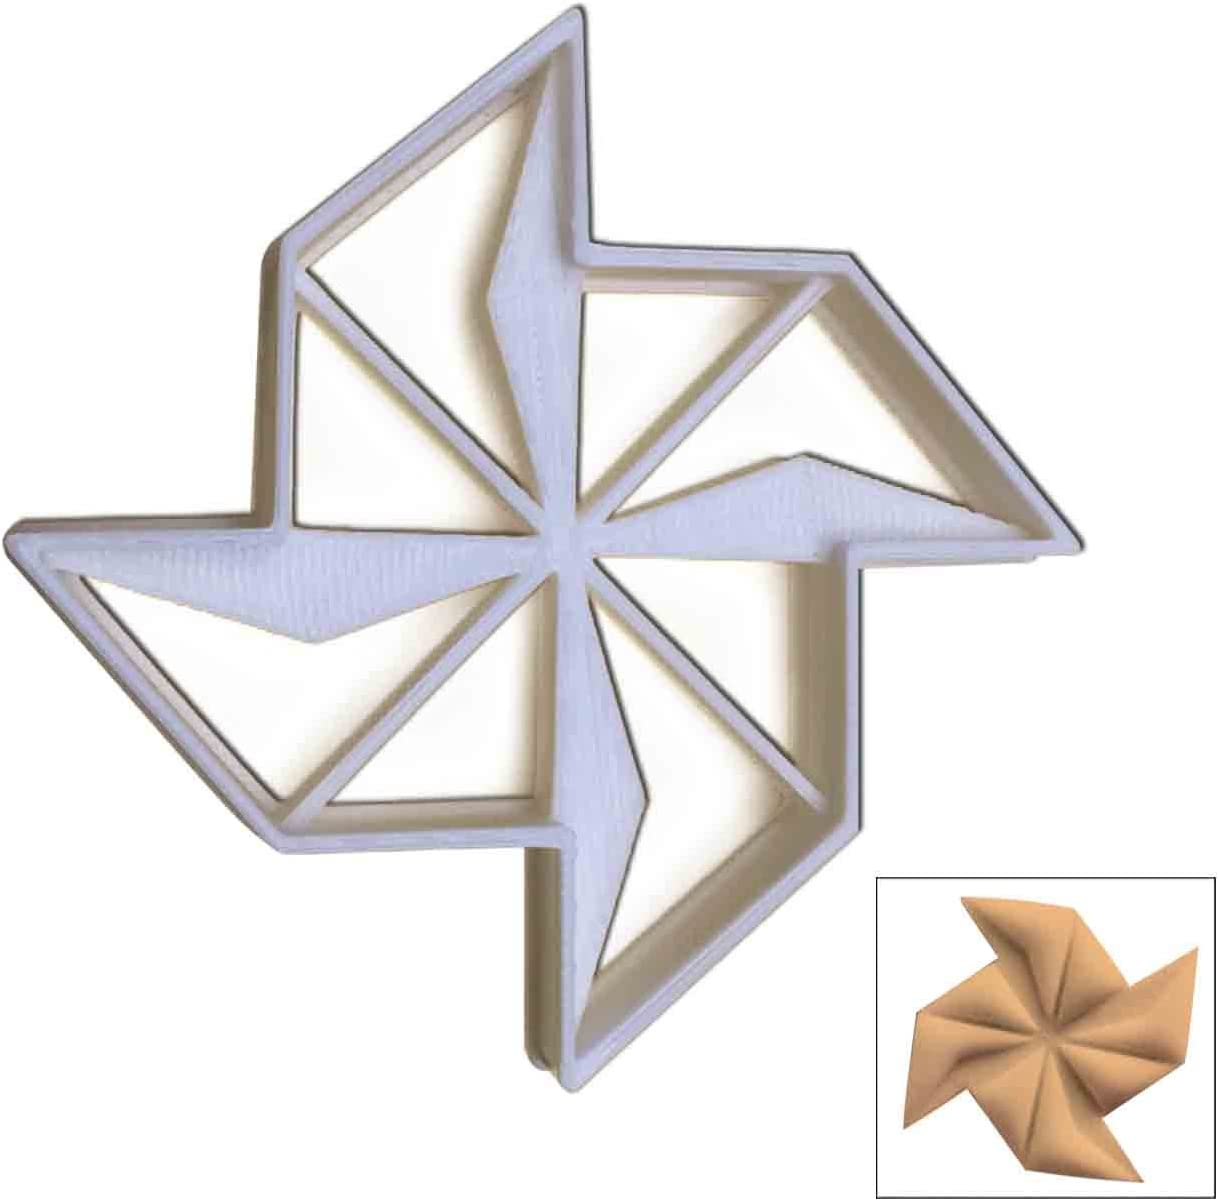 Origami Paper How To Make Origami Pinwheel, PNG, 500x500px, Paper ... | 1201x1220